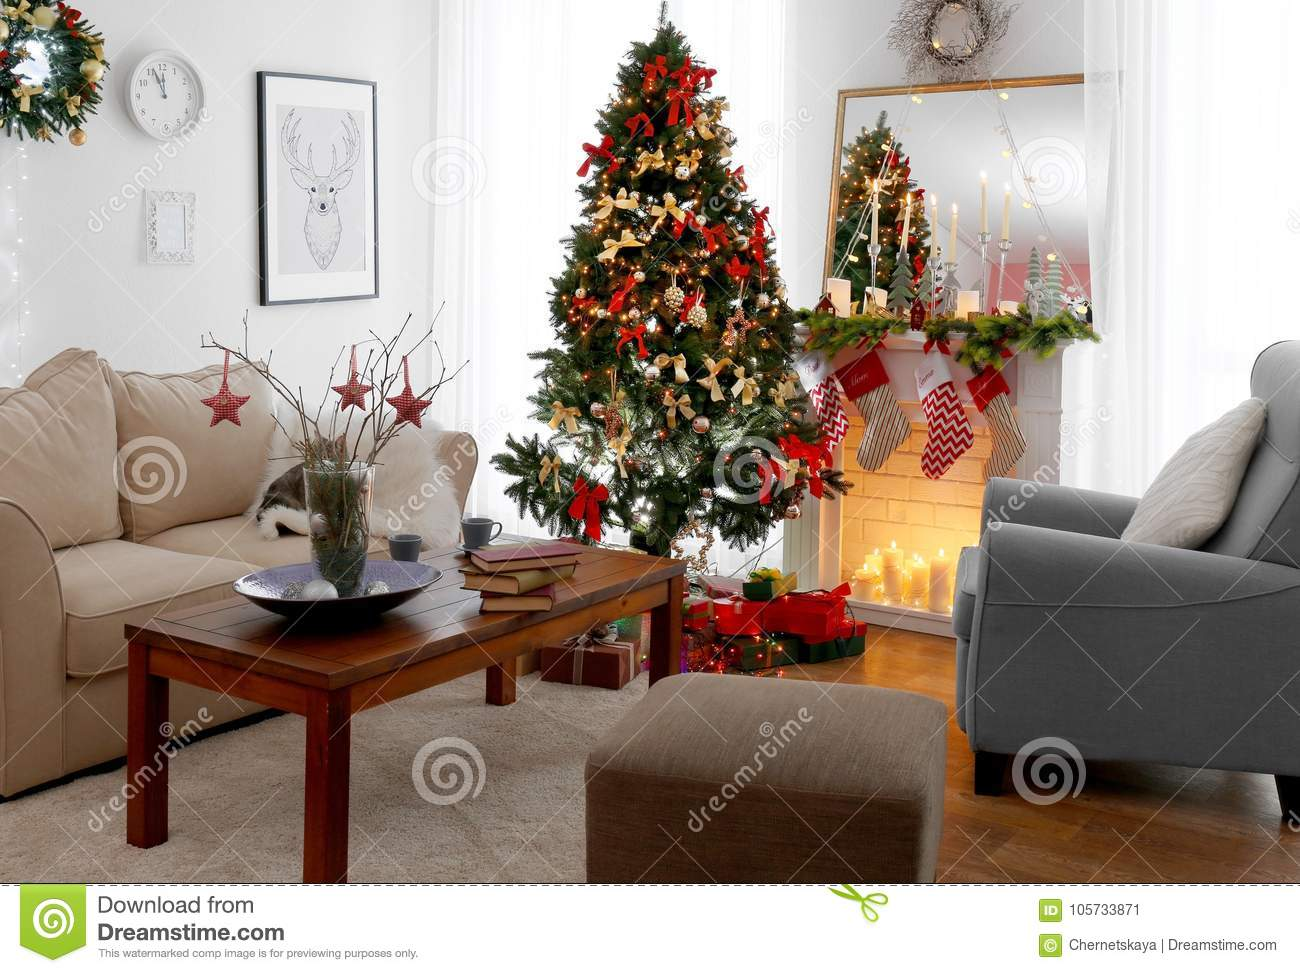 beautiful living rooms at christmas sofa set room interior of decorated for stock image